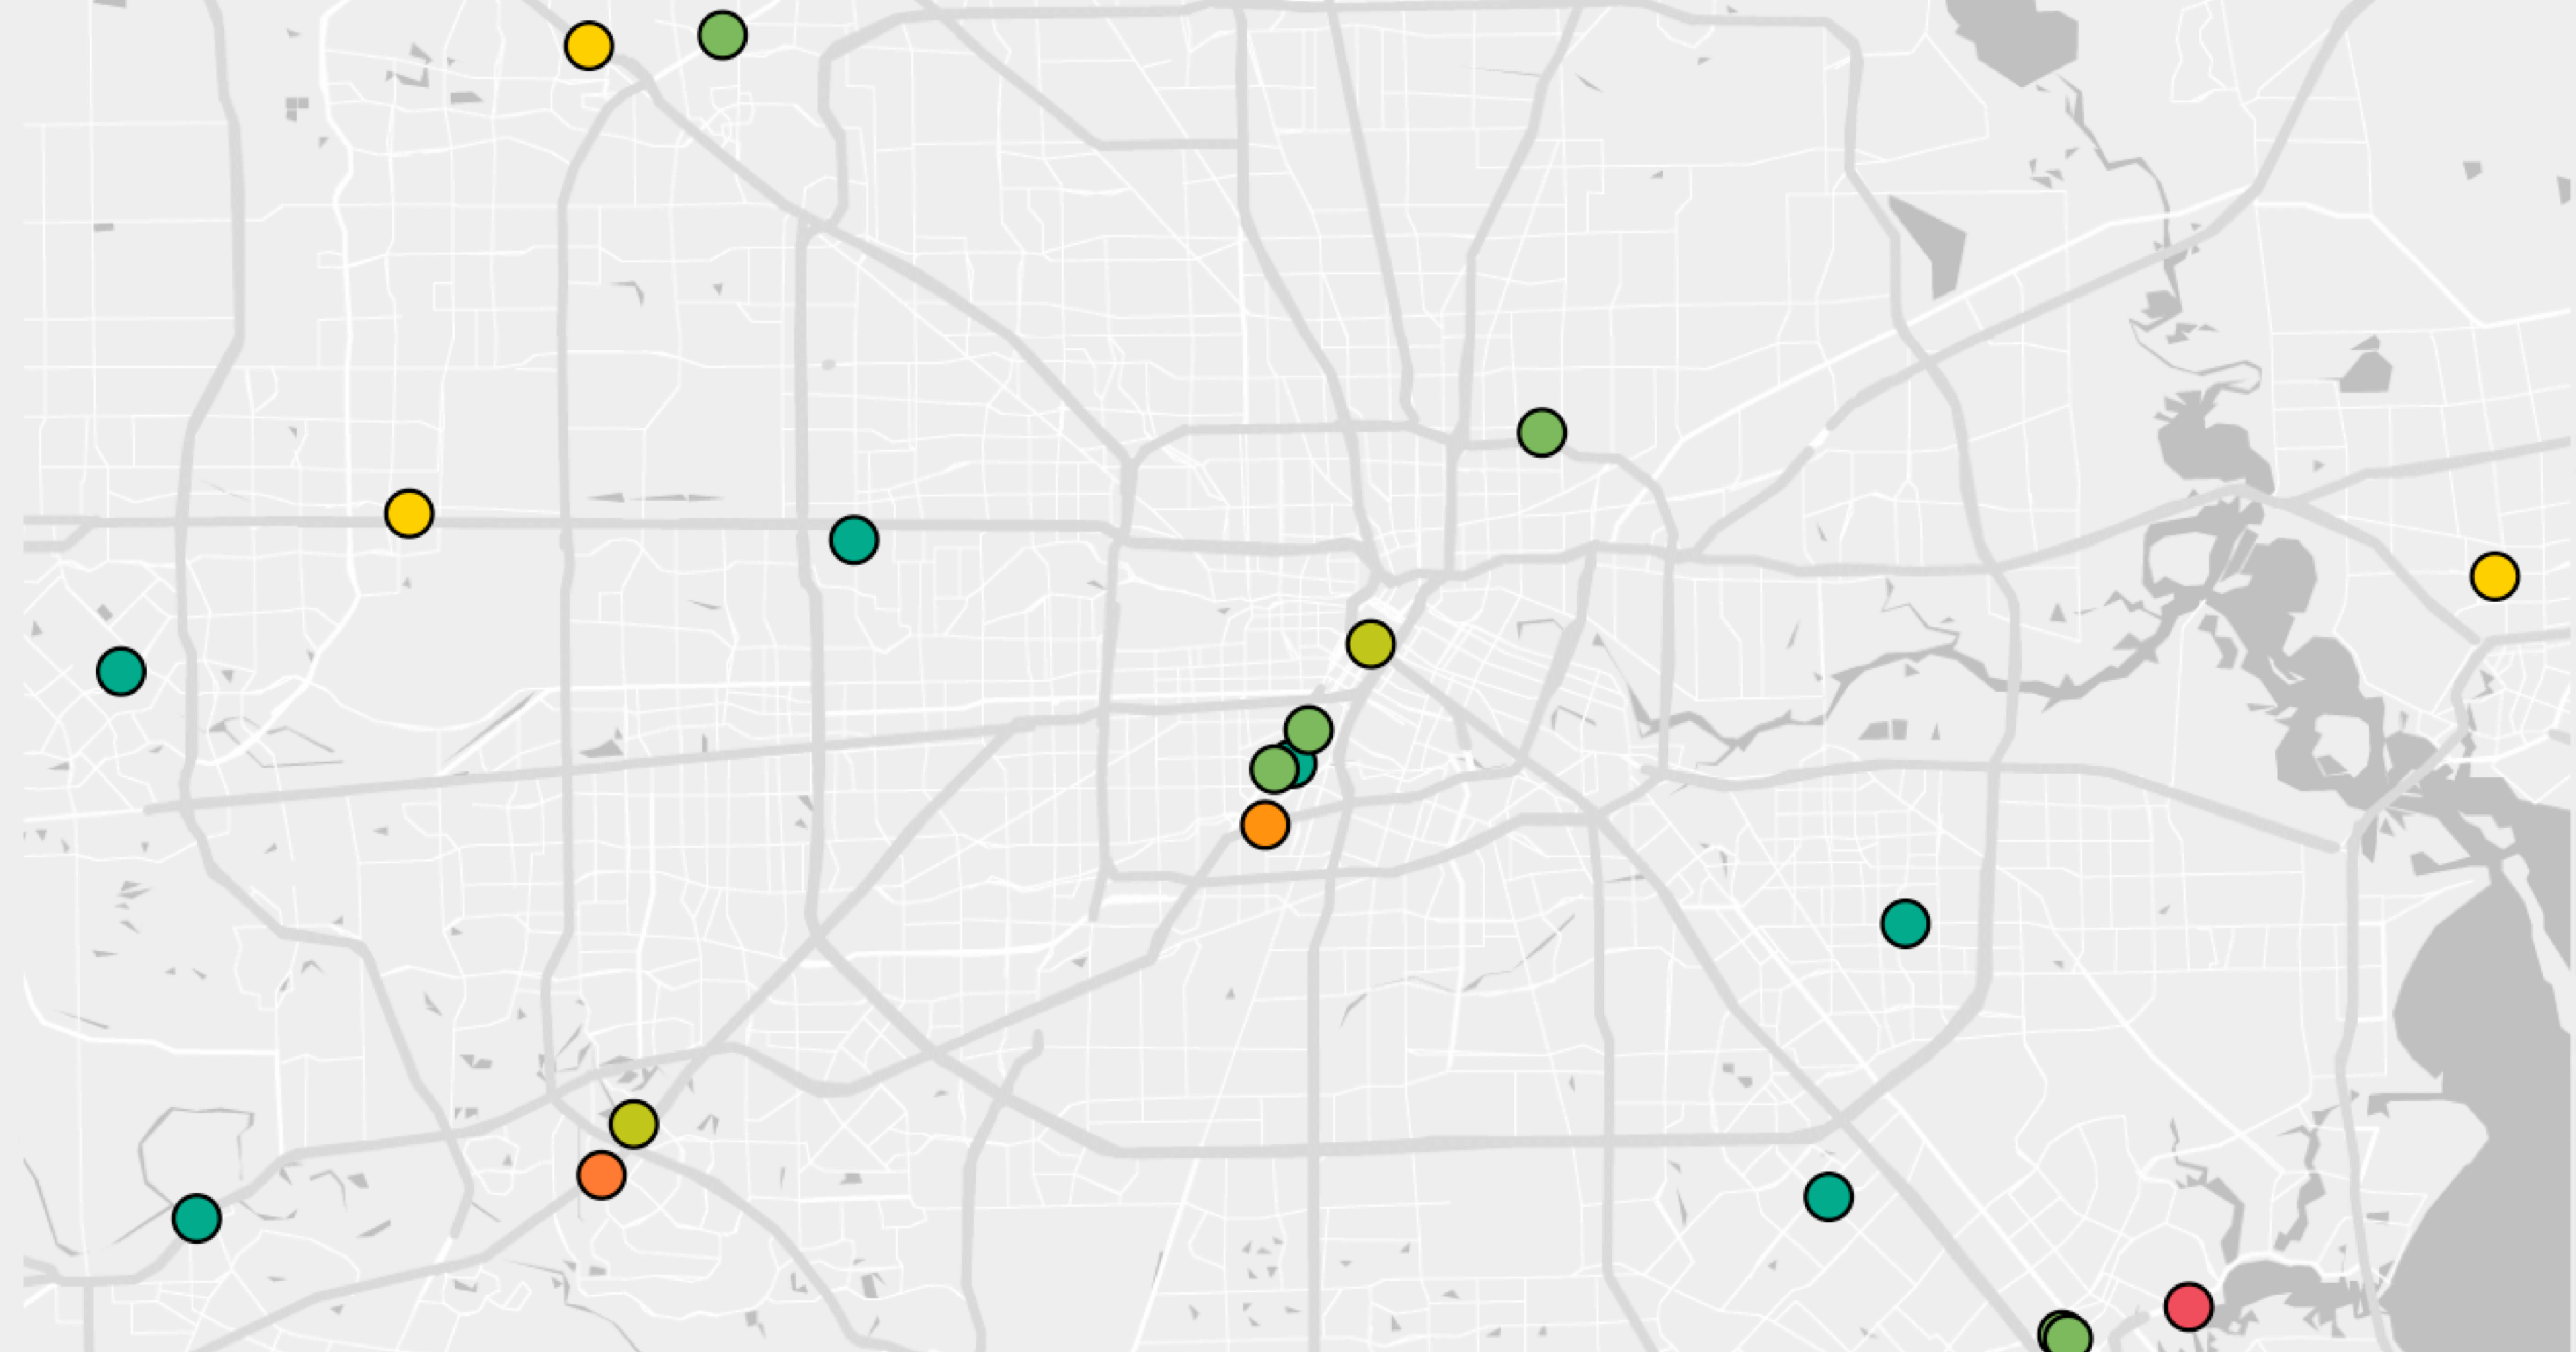 Map of the Houston, Texas area and how the cost variances at hospitals.